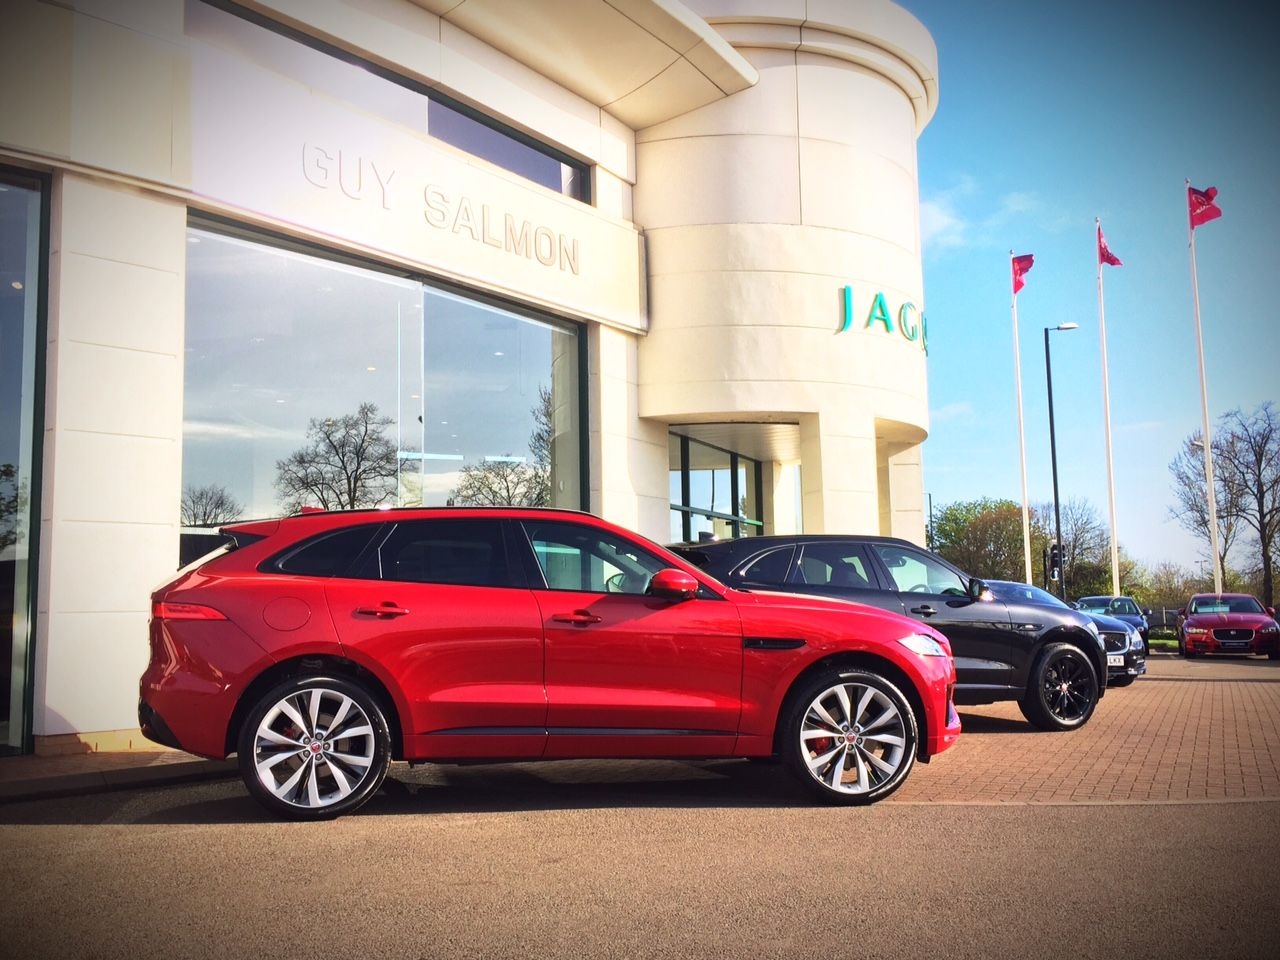 F pace experience is here the all new jaguar